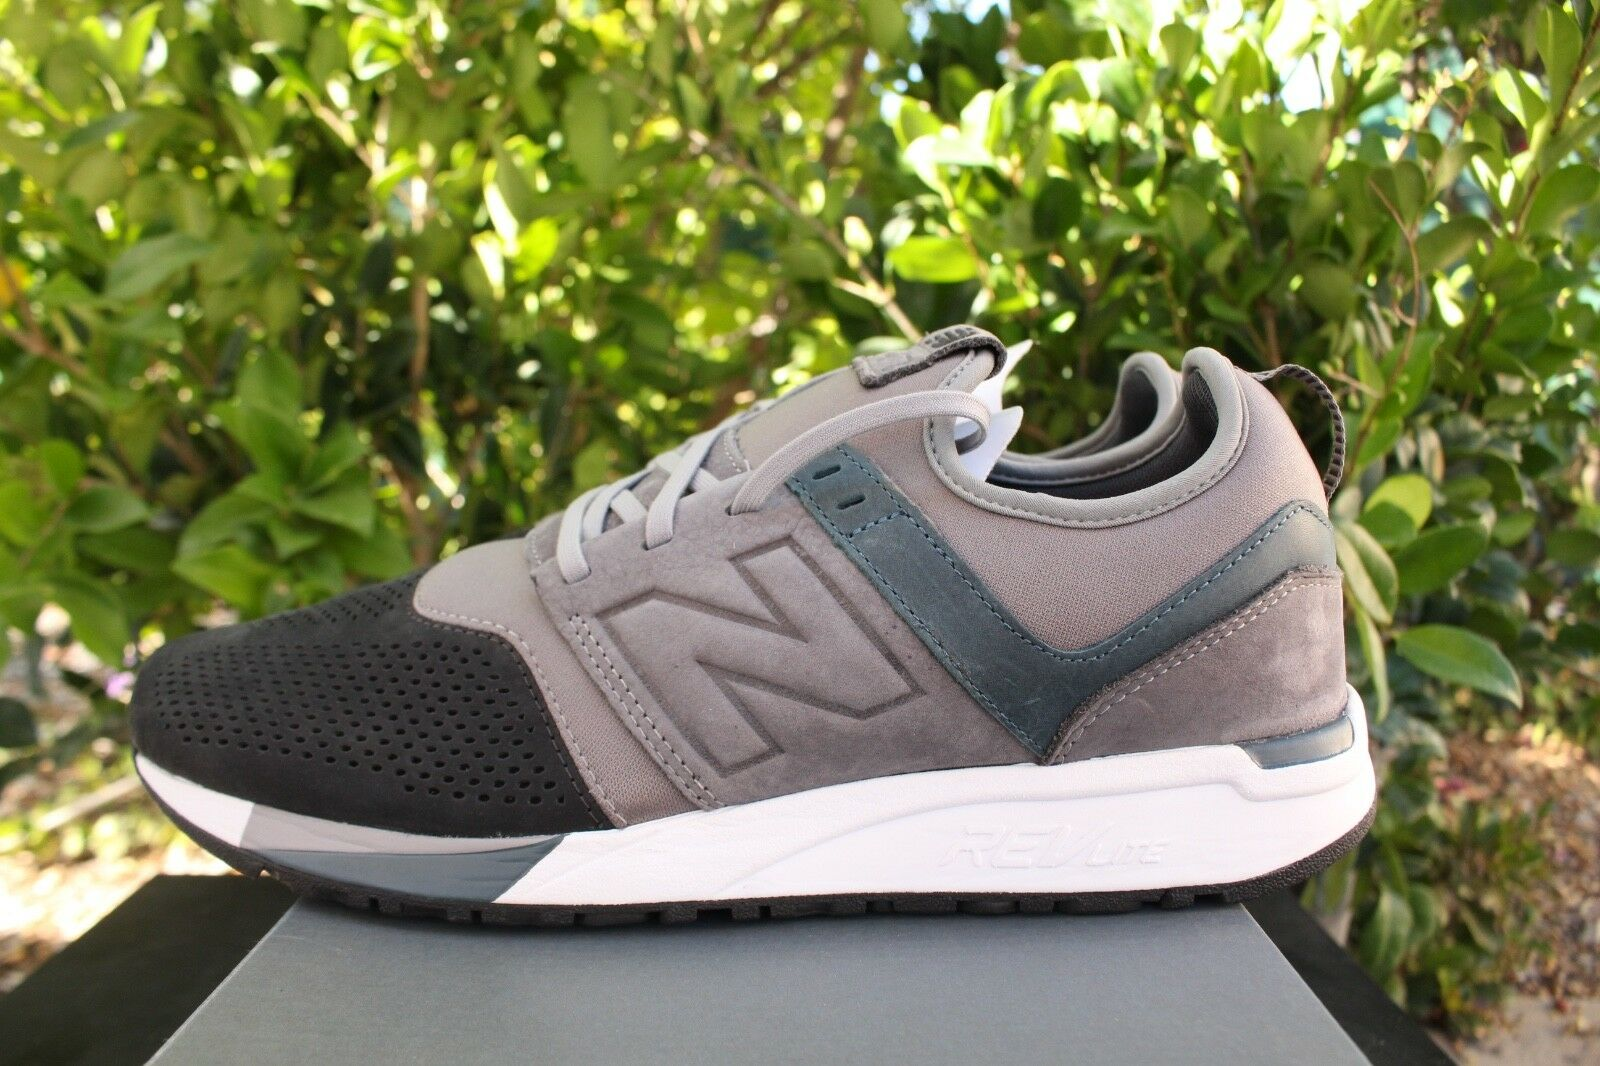 NEW BALANCE 247 LUXE SUEDE SZ 13 DARK GREY NAVY blueE BLACK ICONS MRL247N4